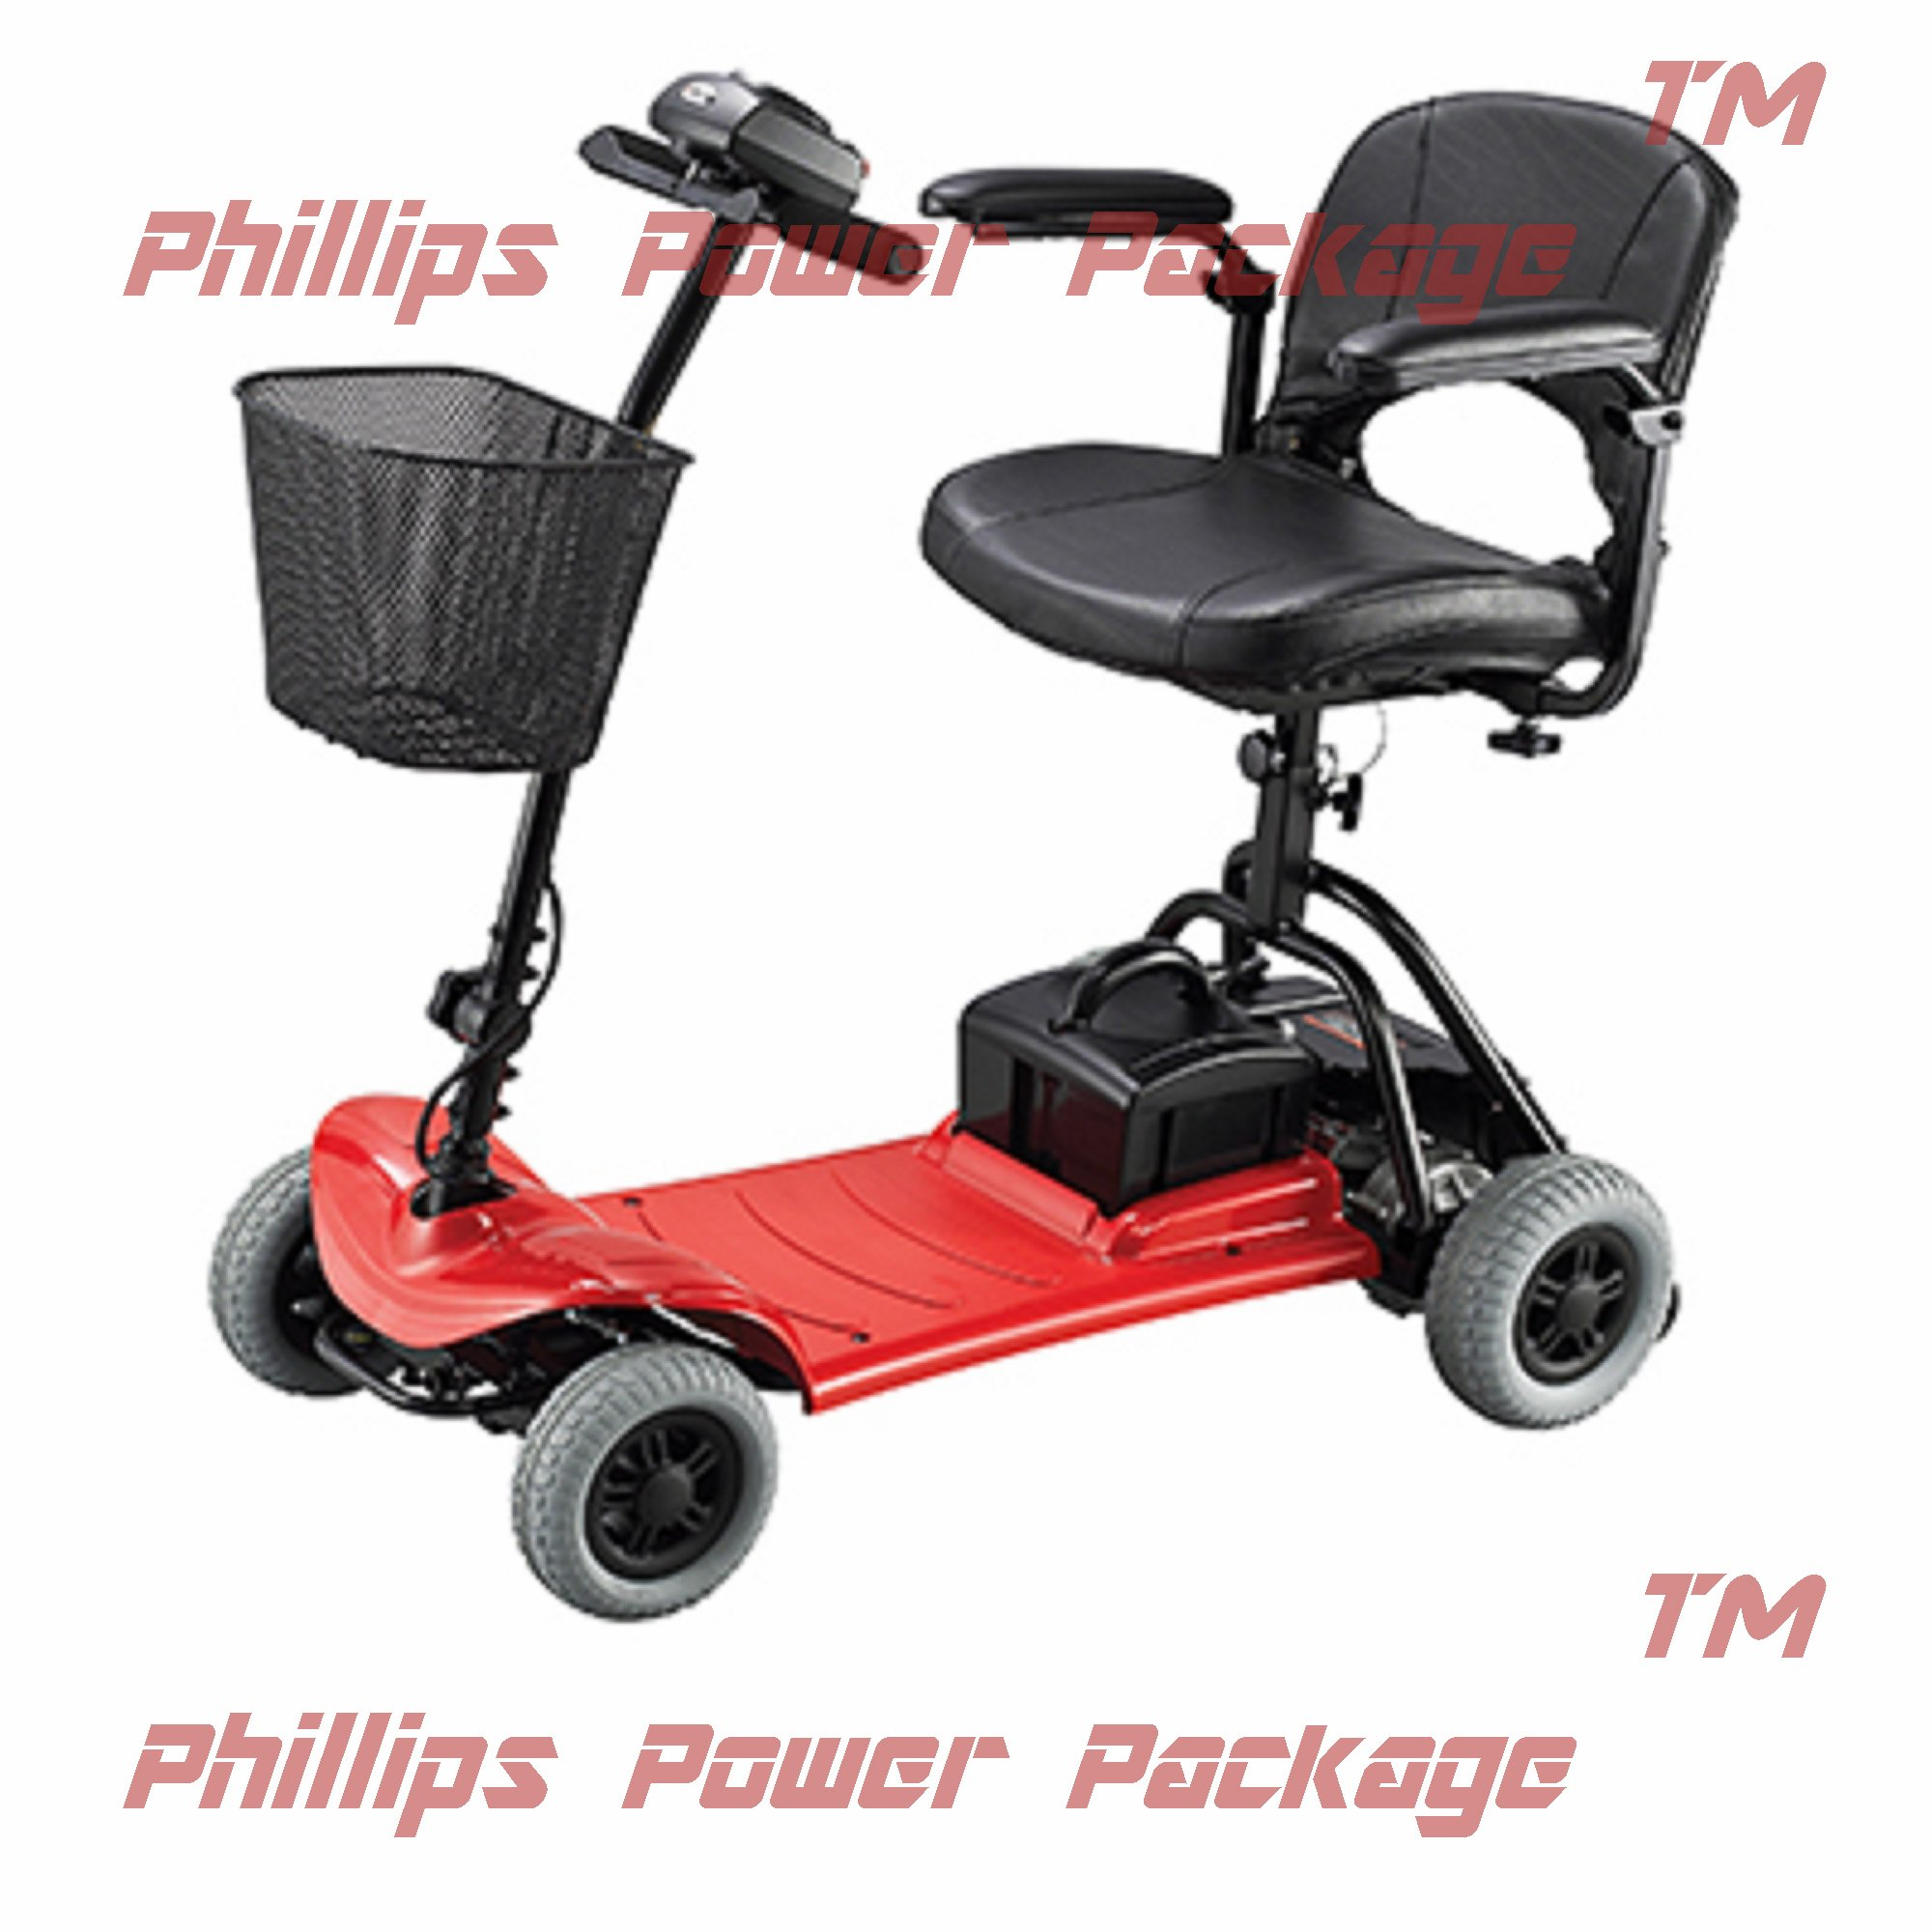 Merits Health Products - Roadster - 4-Wheel Scooter - 15''W x 15''D - Red - PHILLIPS POWER PACKAGE TM - TO $500 VALUE